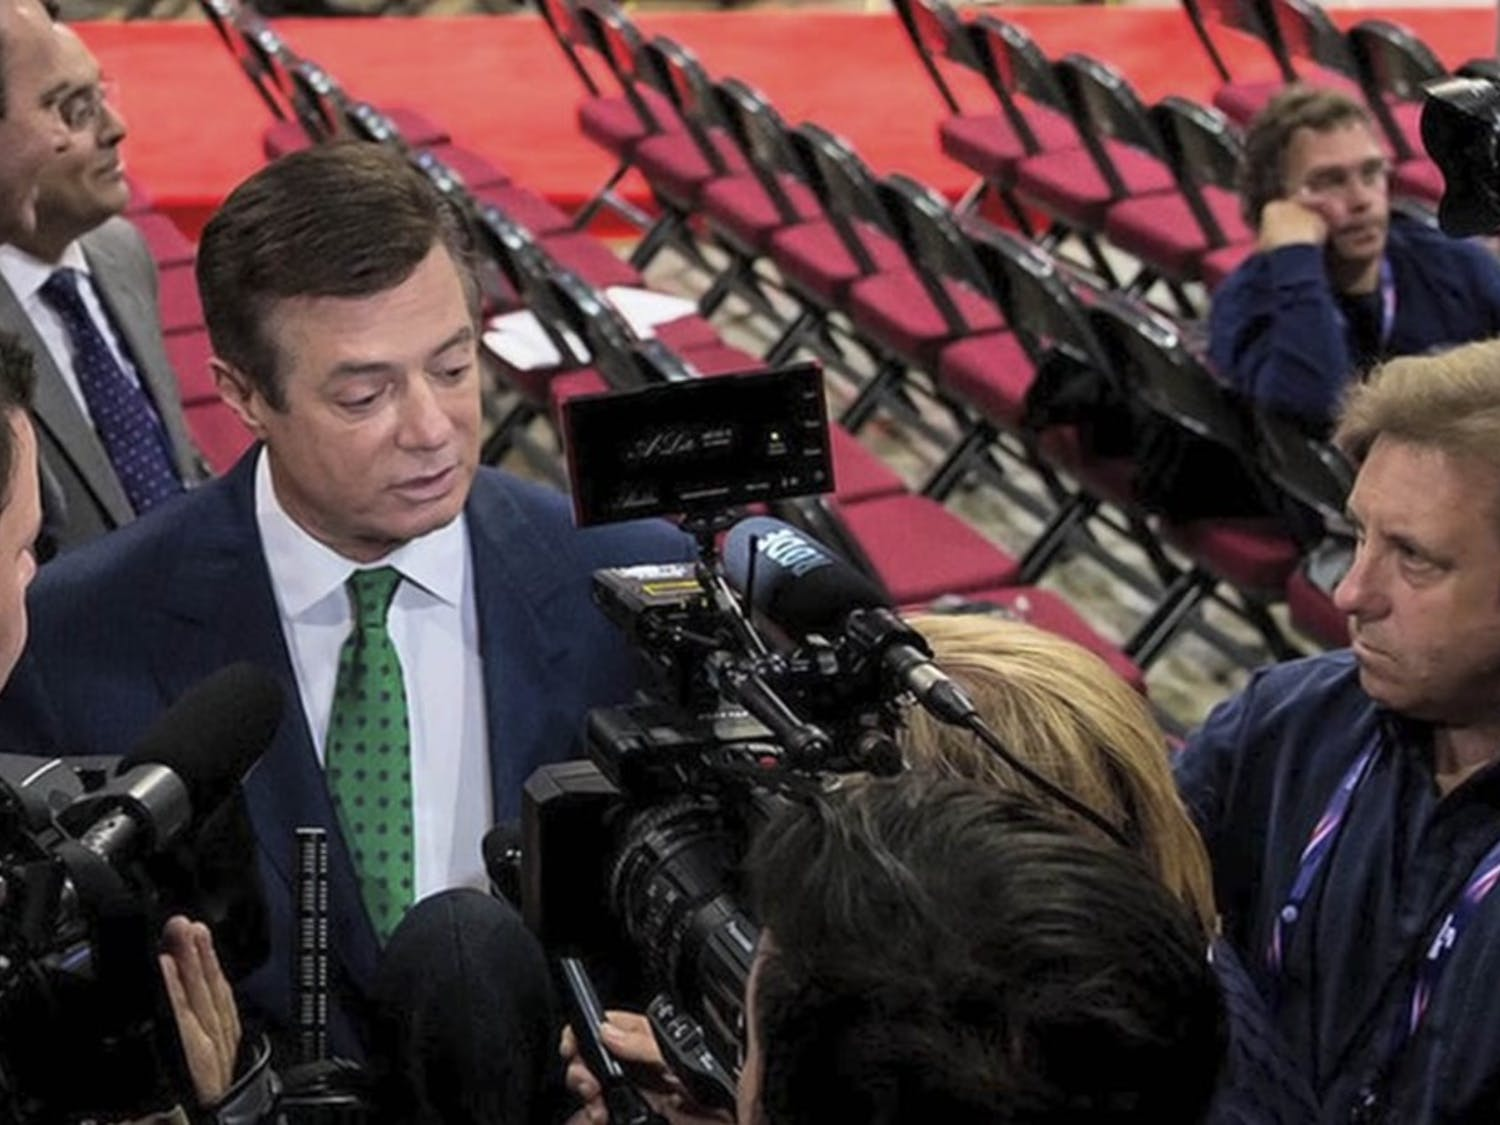 Trump's former campaign manager Paul Manafort worked with a Russian billionaire to influence politics and business dealings in the U.S., according to the Associated Press.